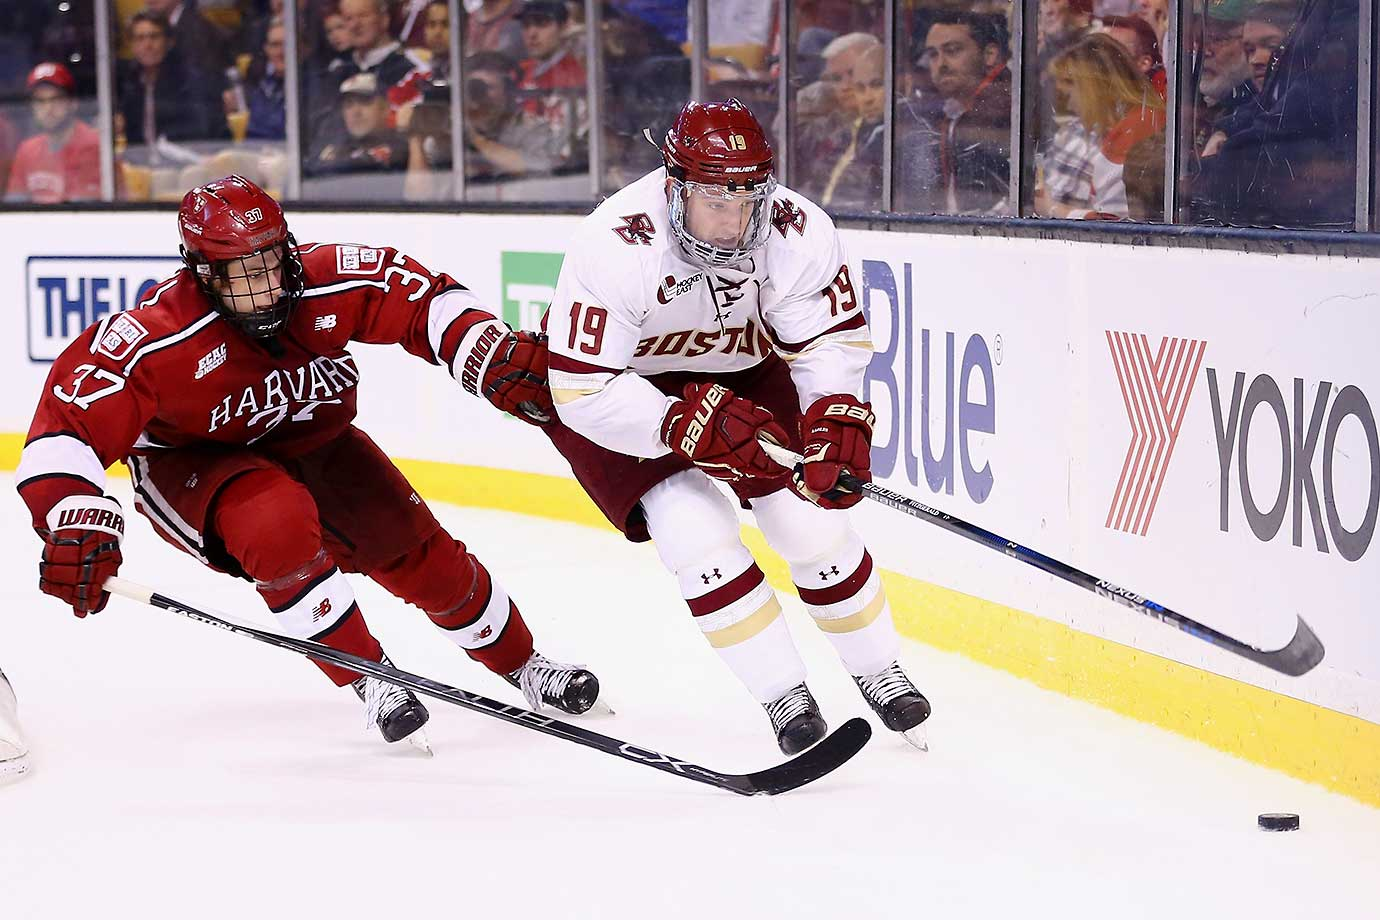 Desmond Bergin of the Harvard Crimson defends Ryan Fitzgerald of the Boston College Eagles at TD Garden in Boston. The Eagles won 3-2.